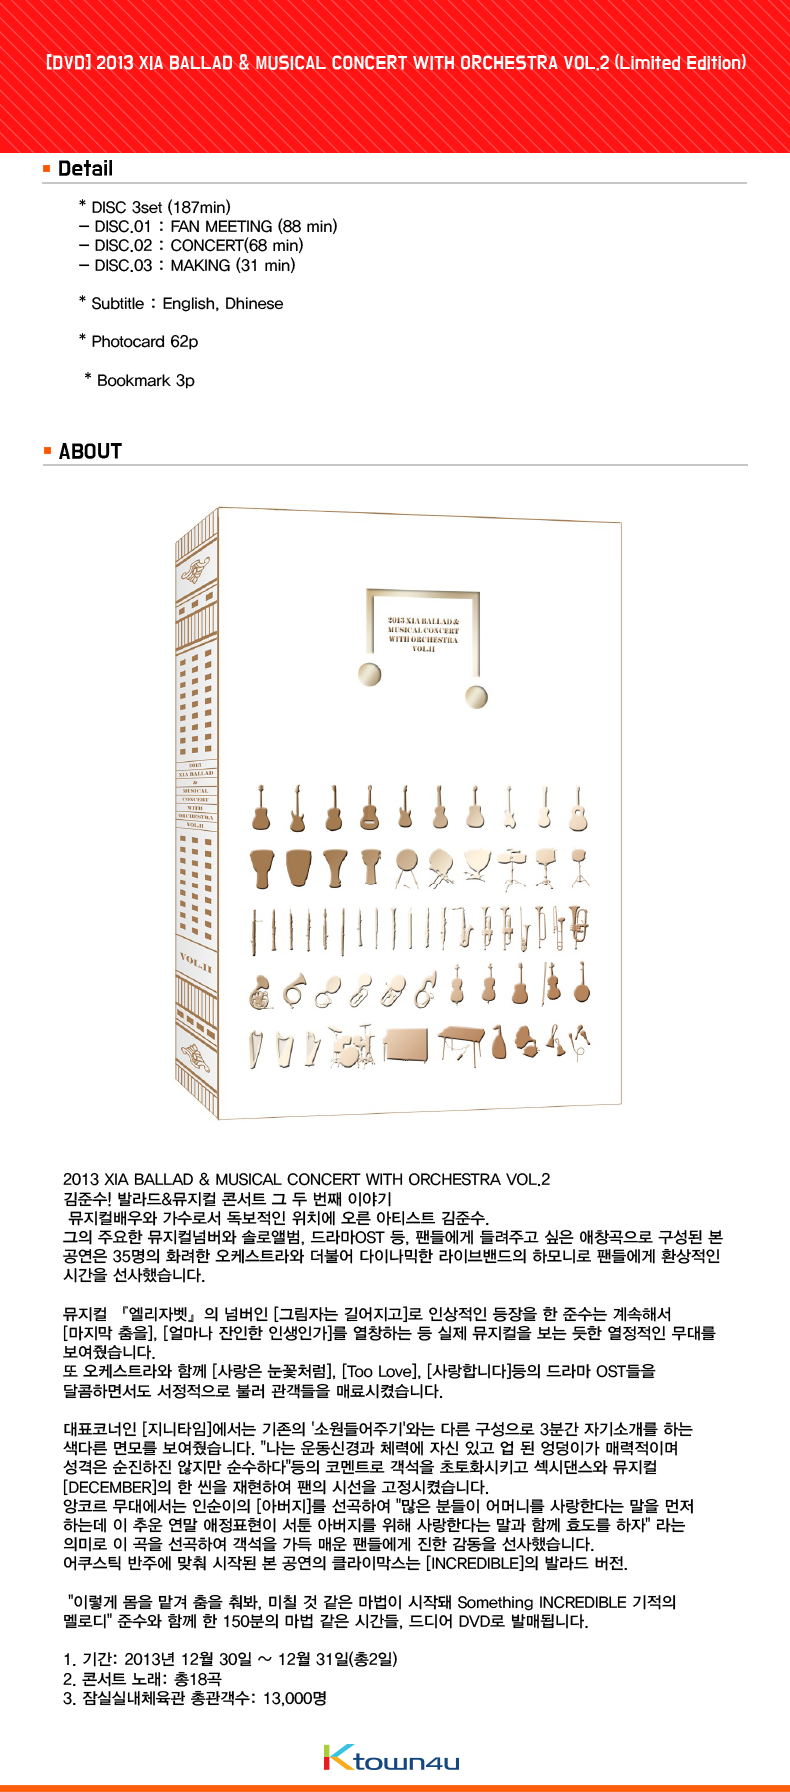 [DVD] XIA BALLAD & MUSICAL CONCERT WITH ORCHESTRA VOL.2 (Limited Edition)